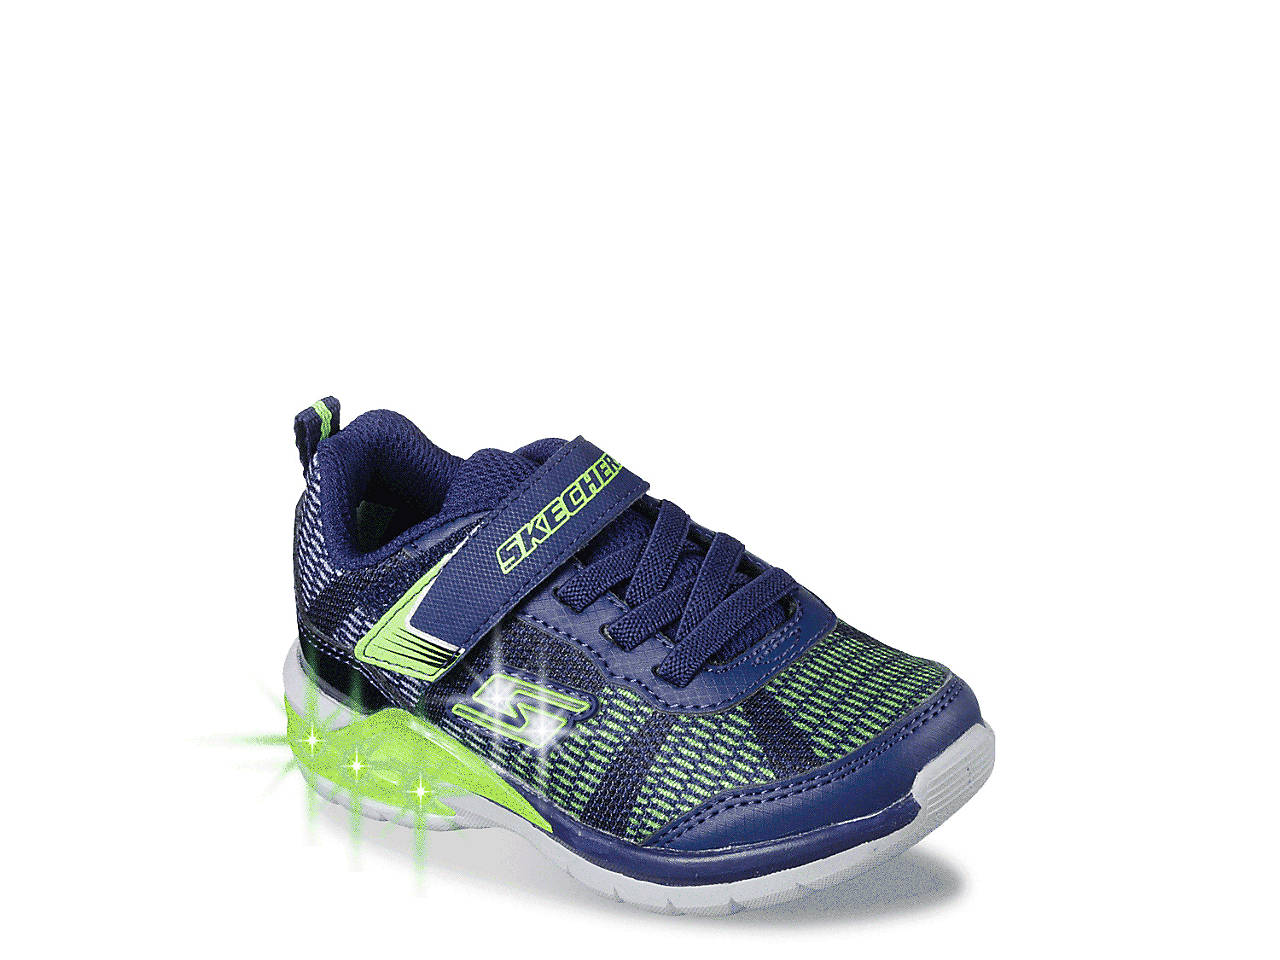 Skechers S Lights Erupters Ii Lava Waves Toddler Light Up Sneaker